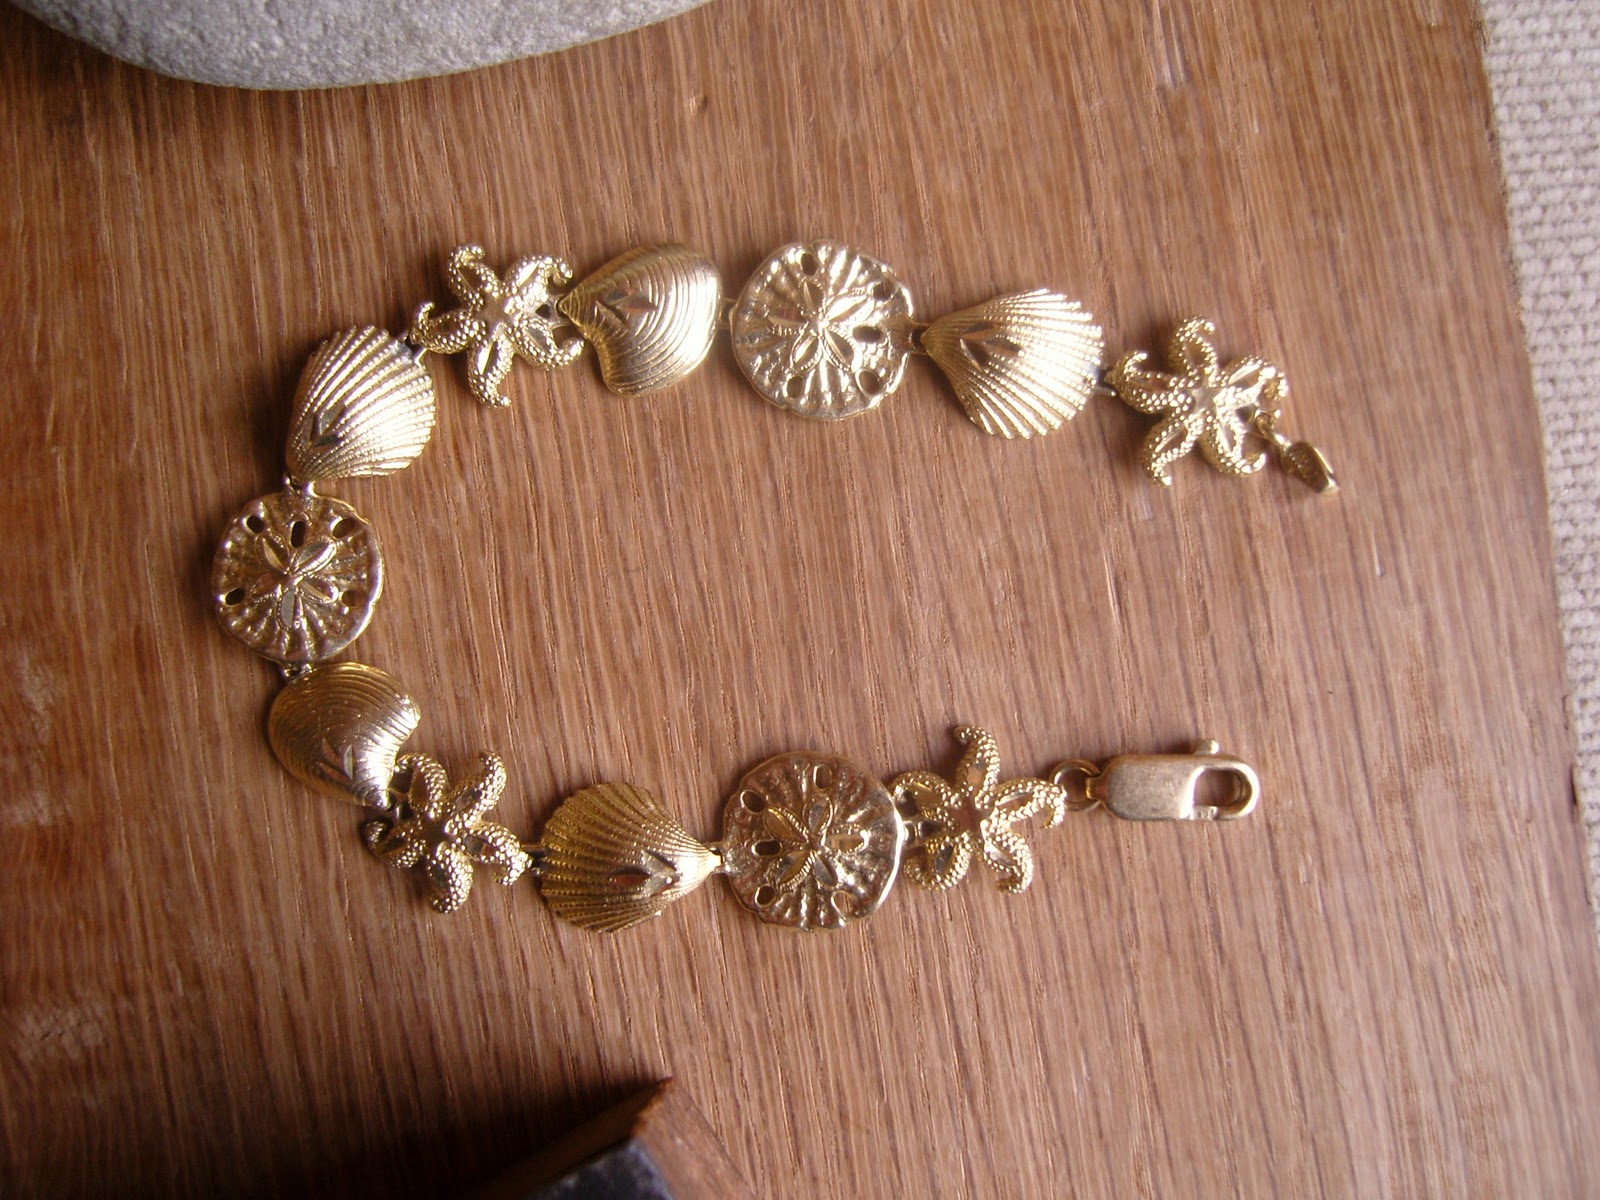 Ellsworth Vintage Jewelry 14k Gold Seashell Bracelet at Scrap Gold